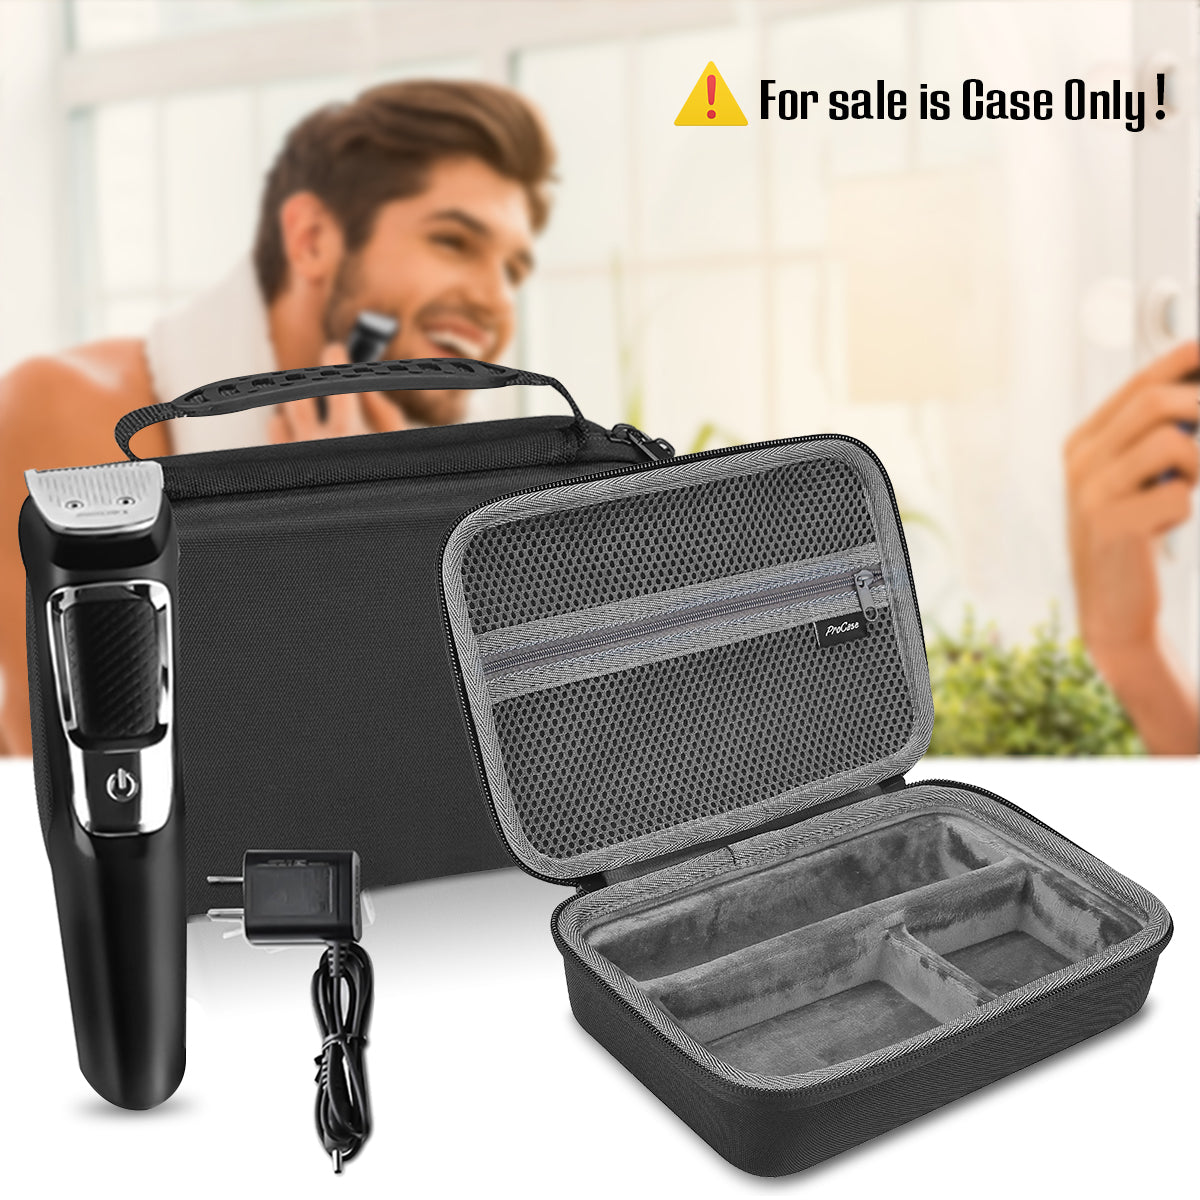 Travel Carrying Case for Philips Norelco Electric Shaver | ProCase